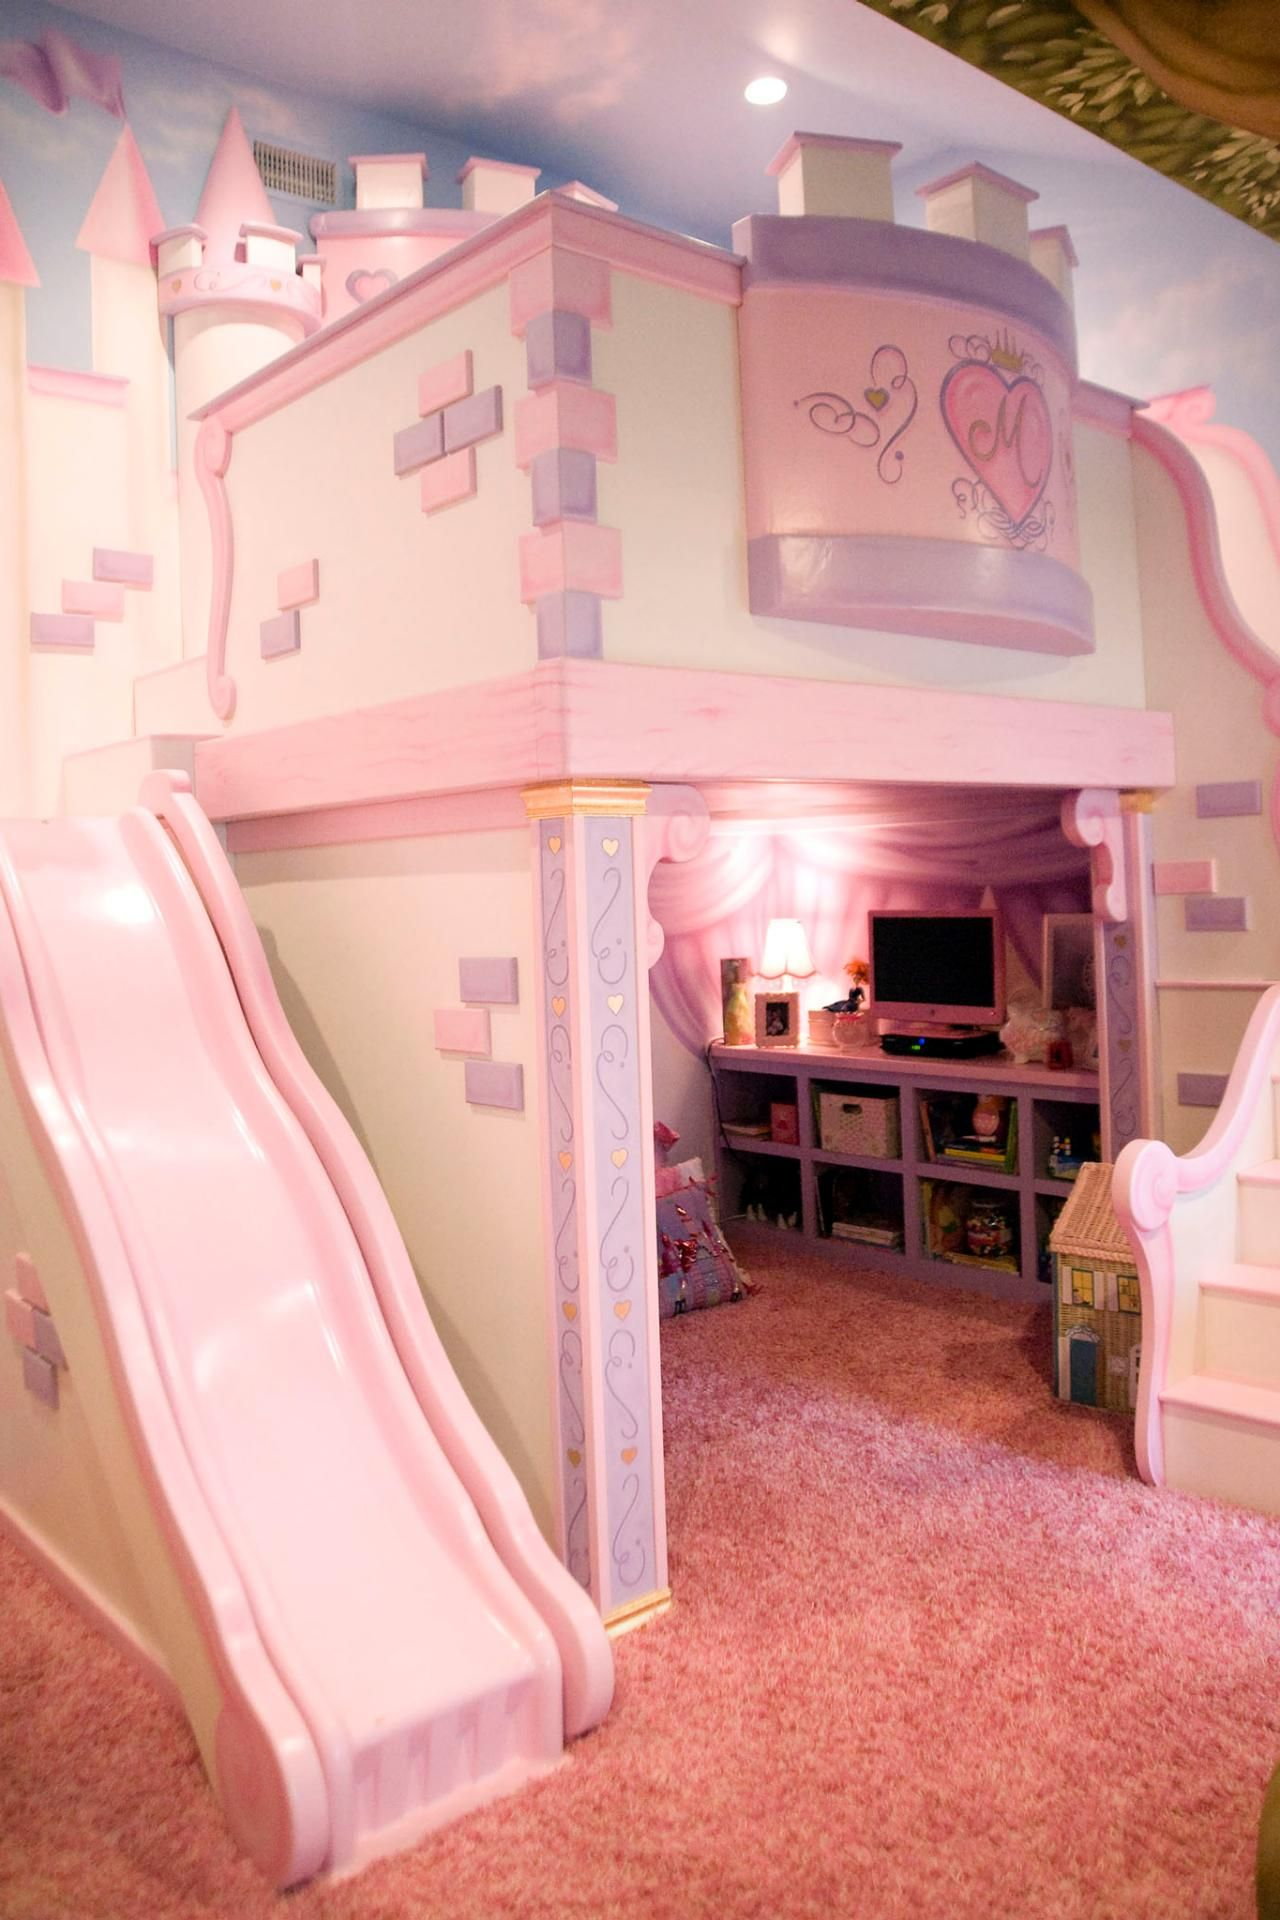 This Playful Pink Bedroom Is Any Little Princess S Dream The Custom Castle Features A Cozy Loft Bed Nestled Within Fortress Walls And Slide Down To